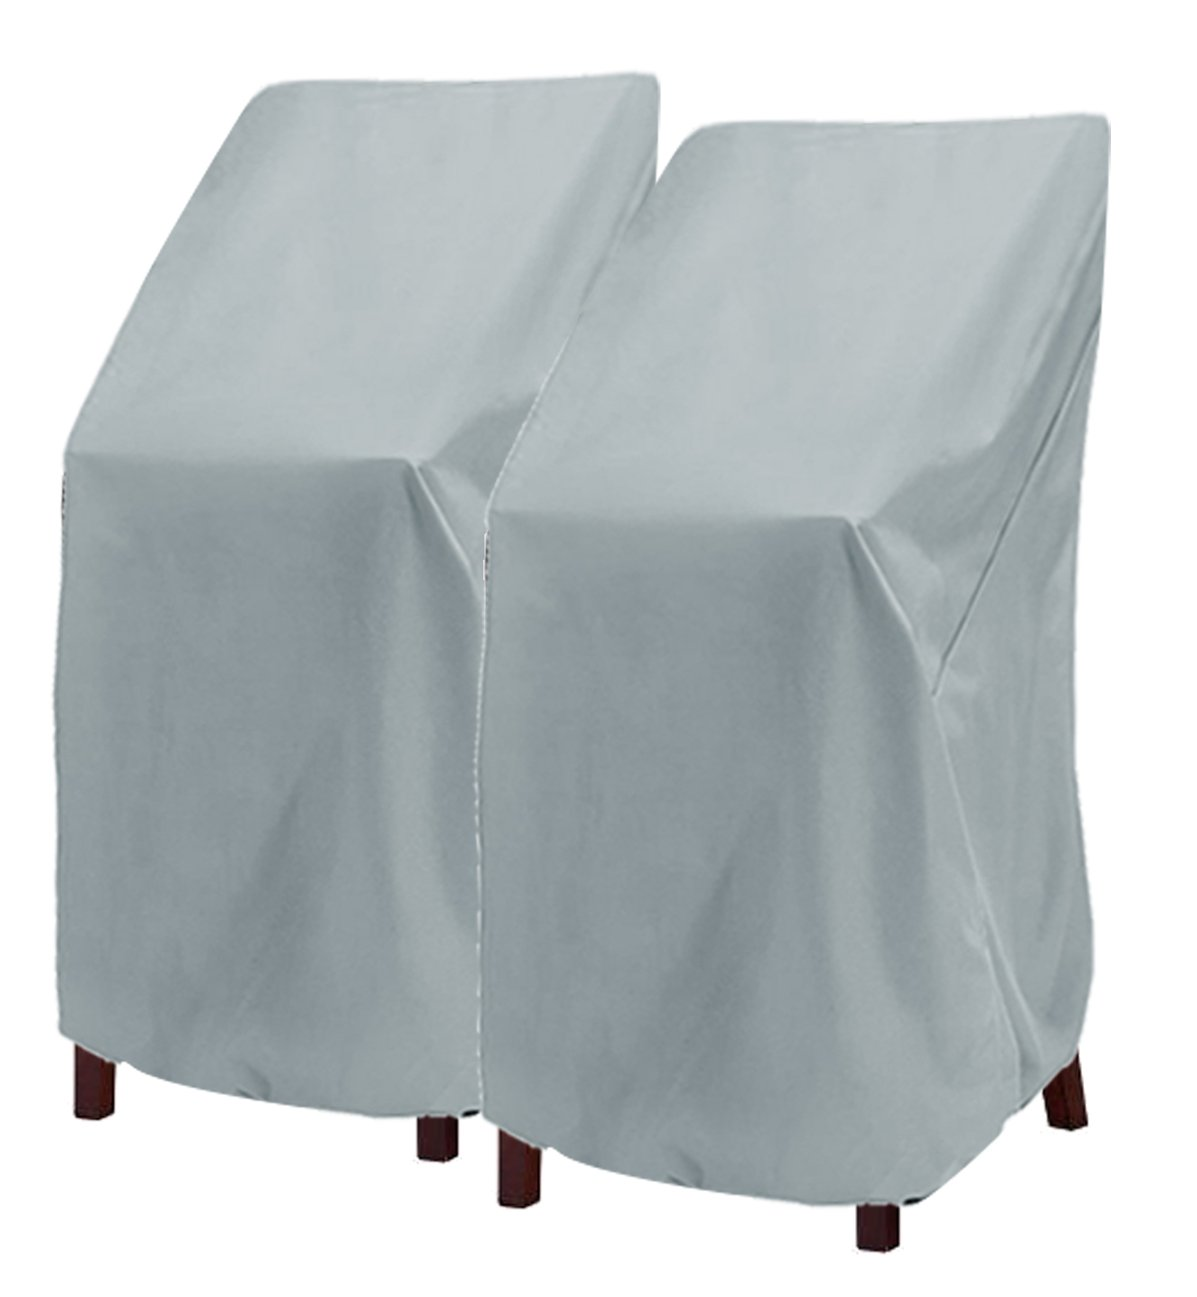 high back chair covers for sale farmhouse chairs buy patio cover highback durable waterproof outdoor bar stool stairs out furniture stackable